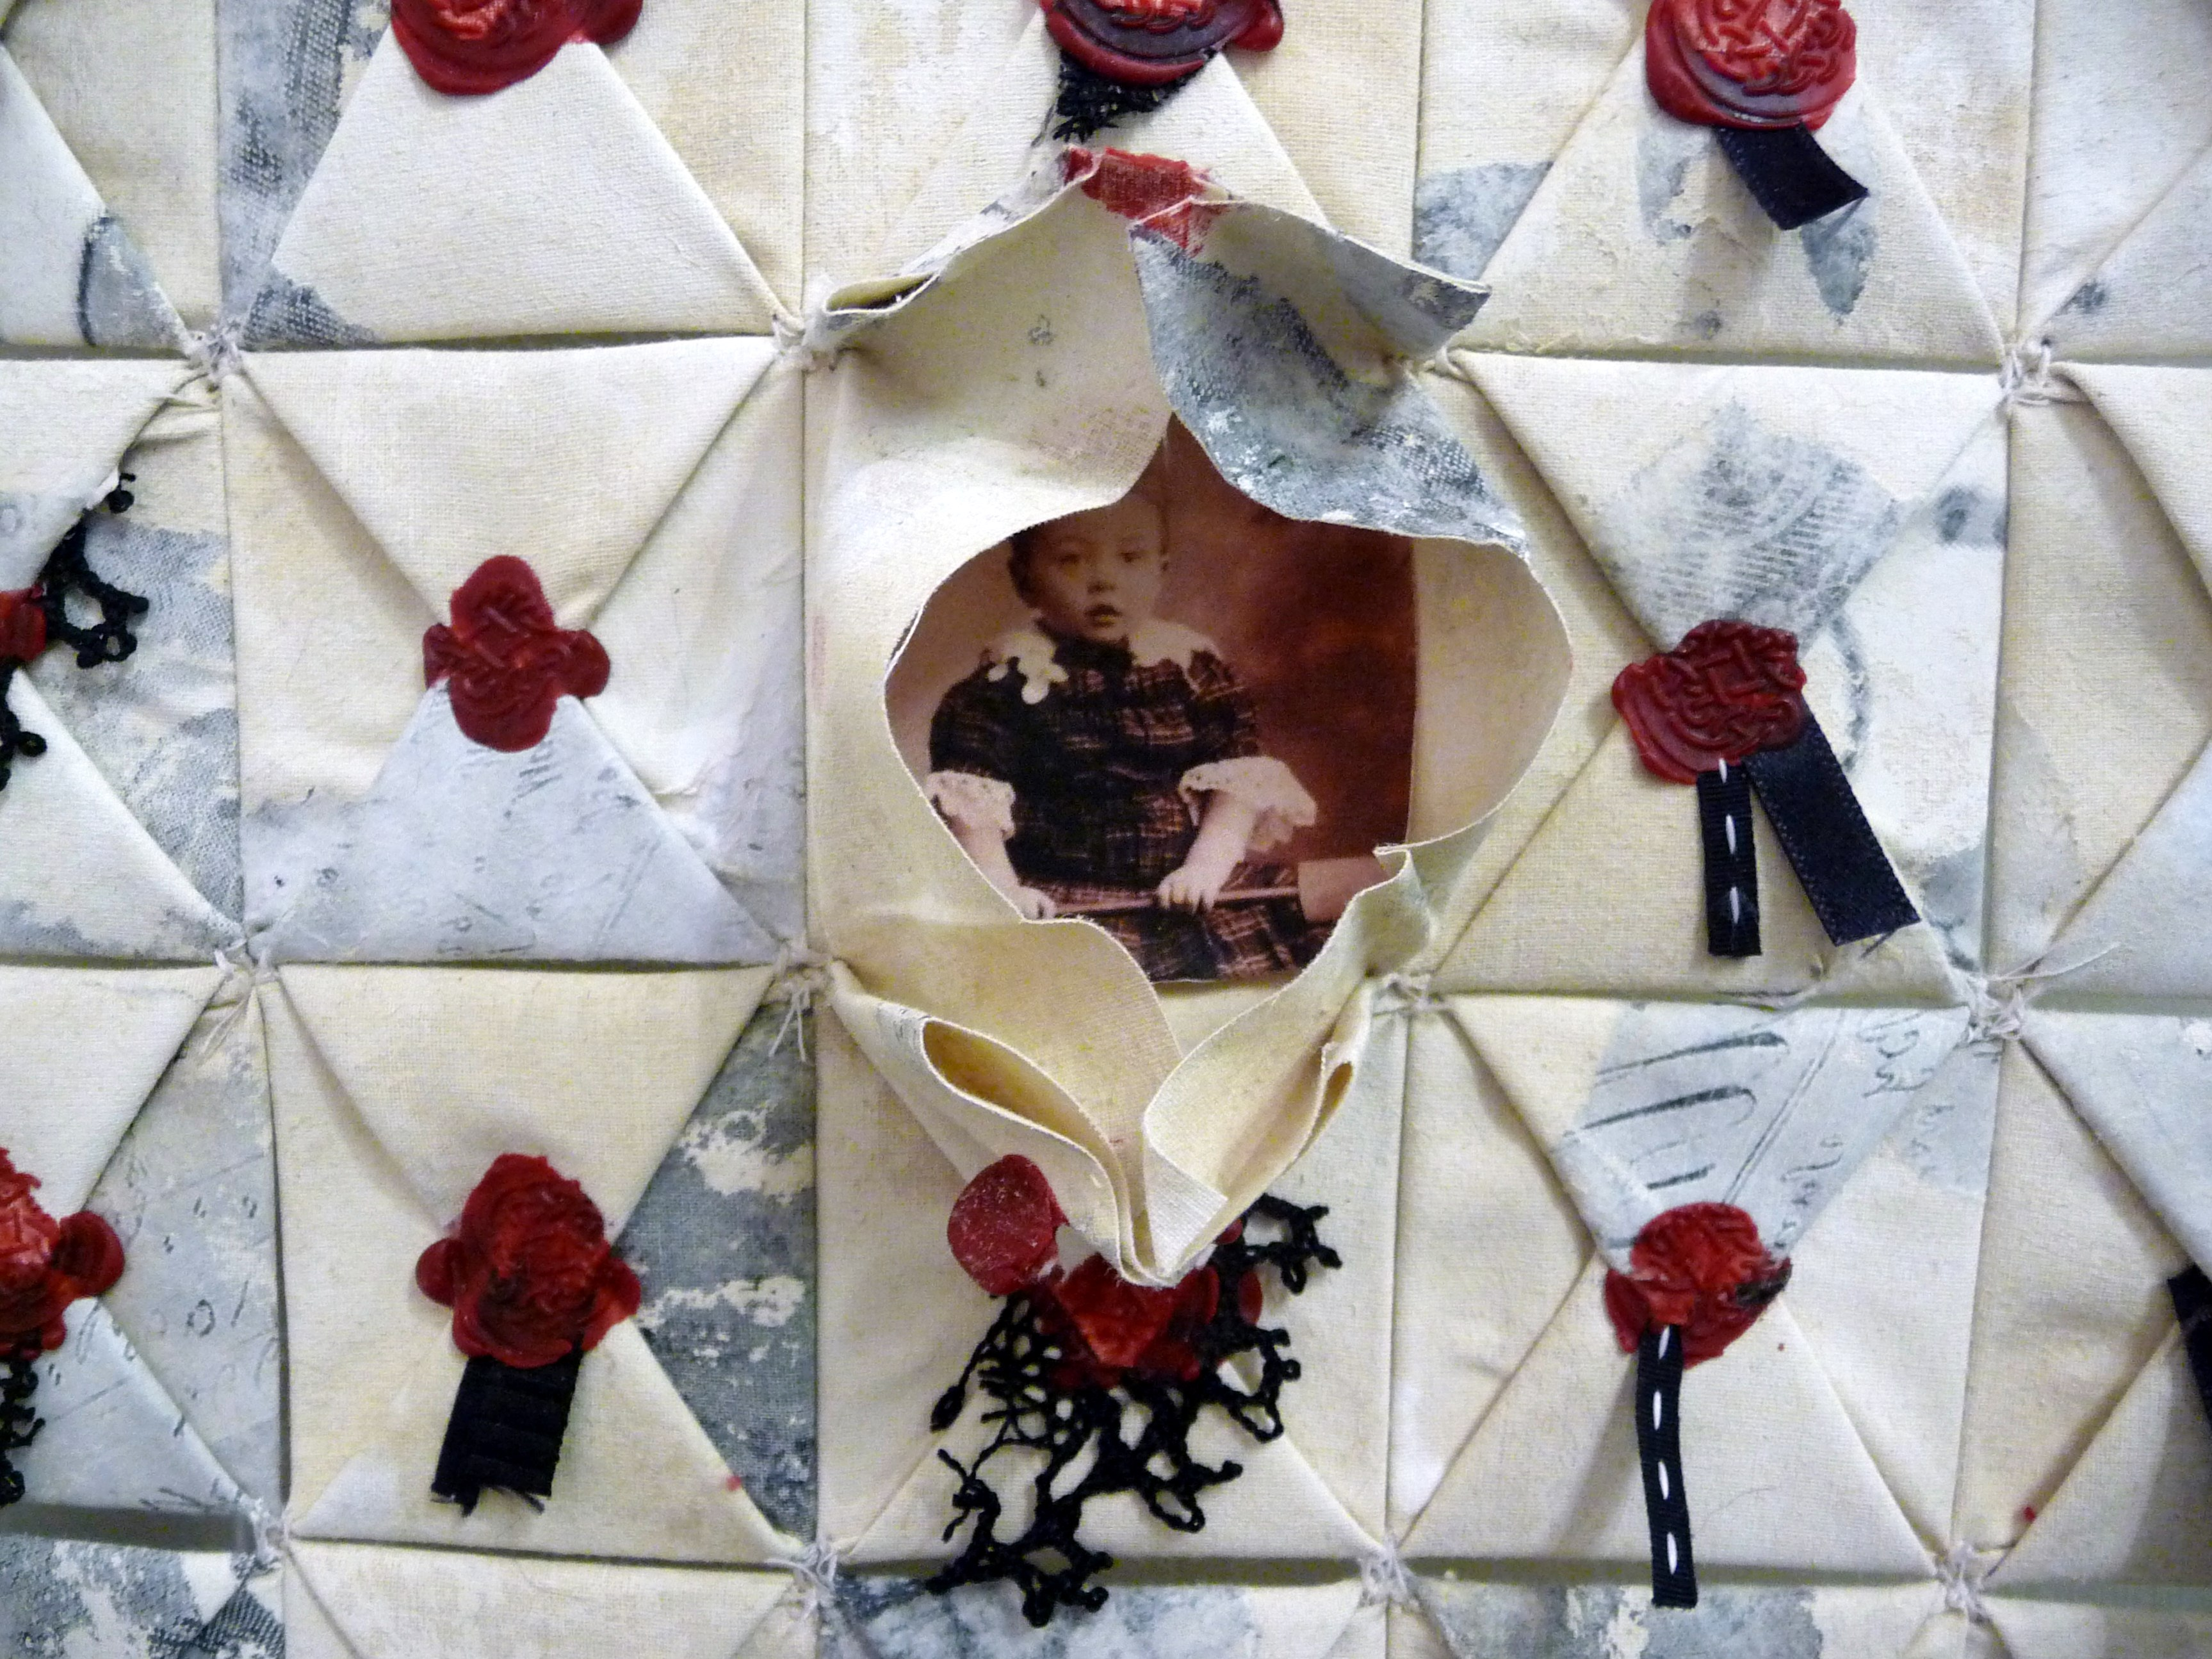 detail of THE FOUNDLINGS - FATE, HOPE & CHARITY 2 by Imogen Riddy of TX Textiles group